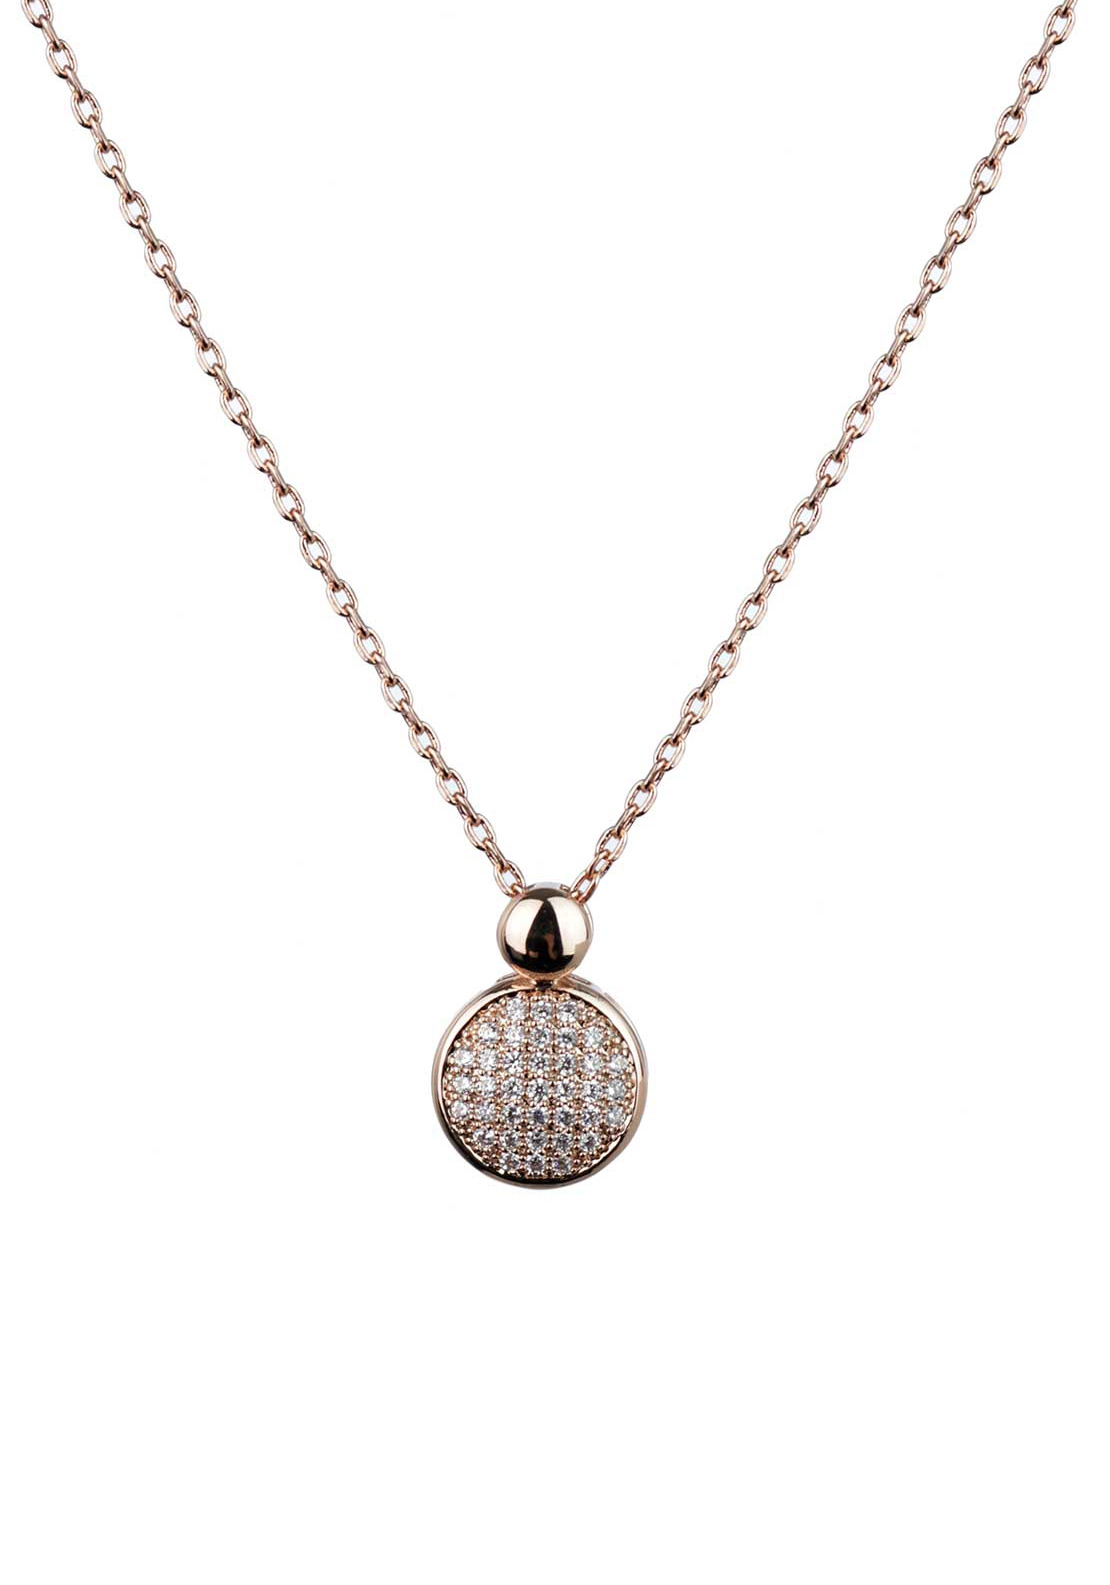 Absolute Jewellery Girls Pave Studded Pendant Necklace, Rose Gold